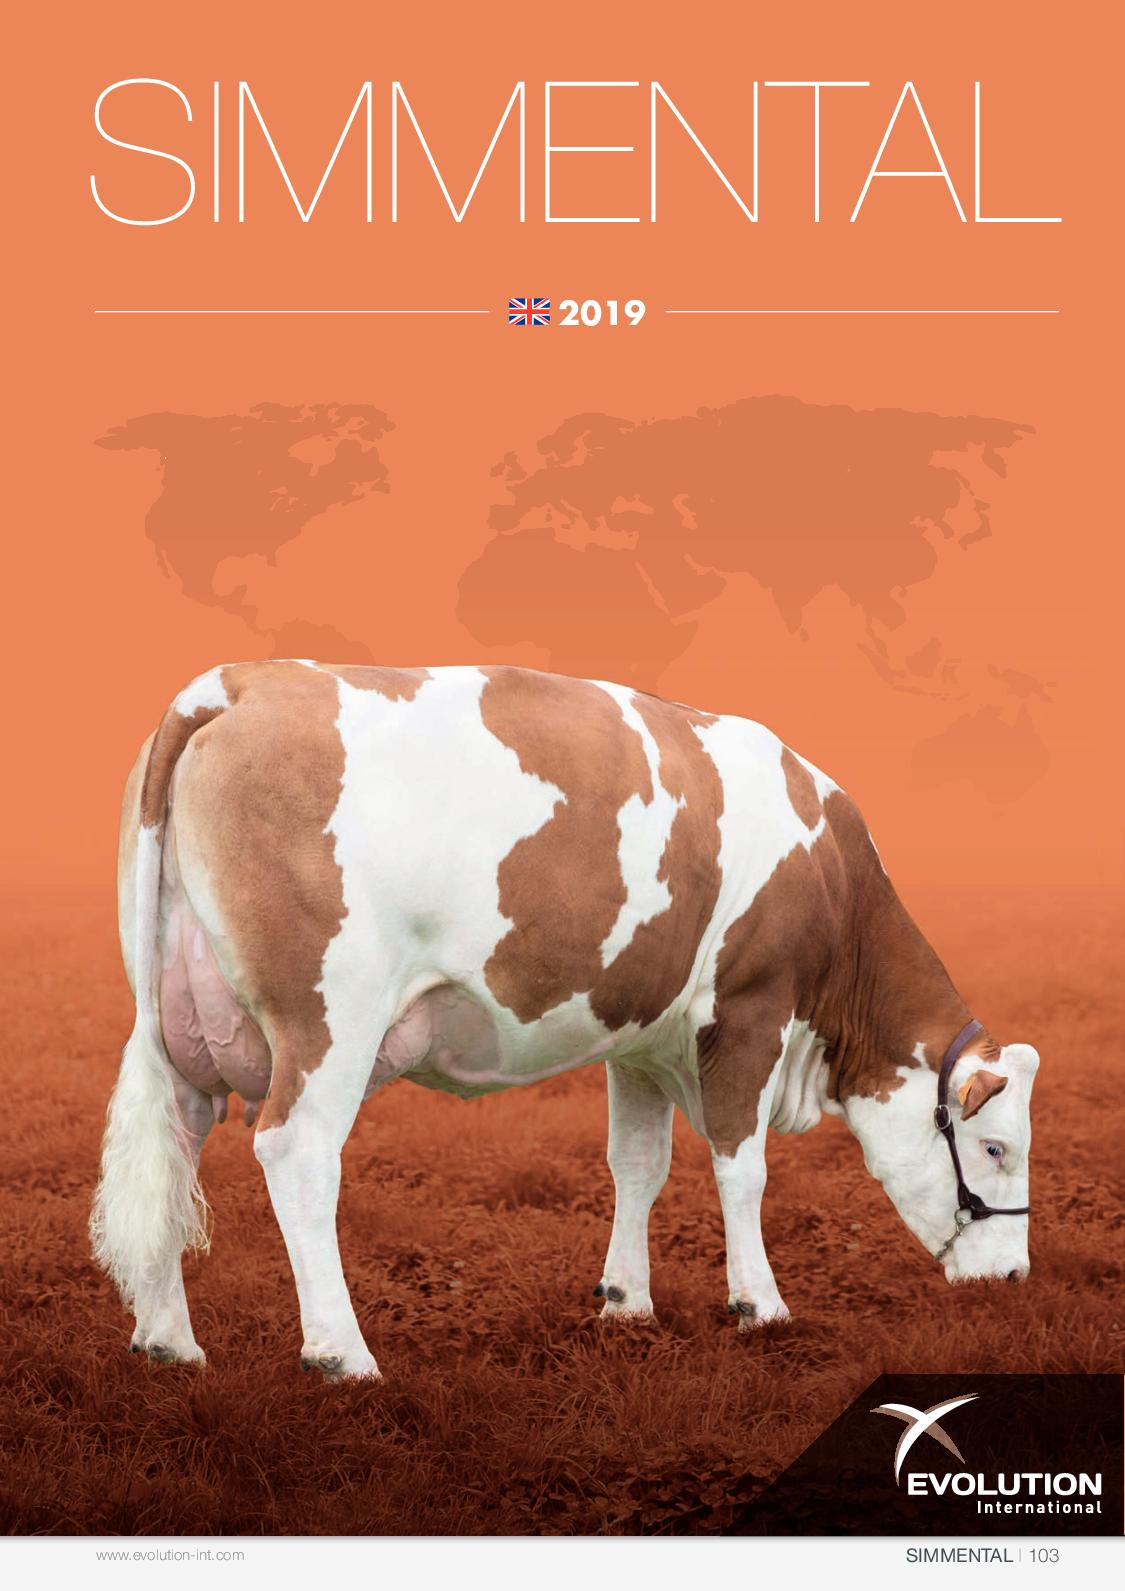 Simmental - EN 2019 - Evolution International